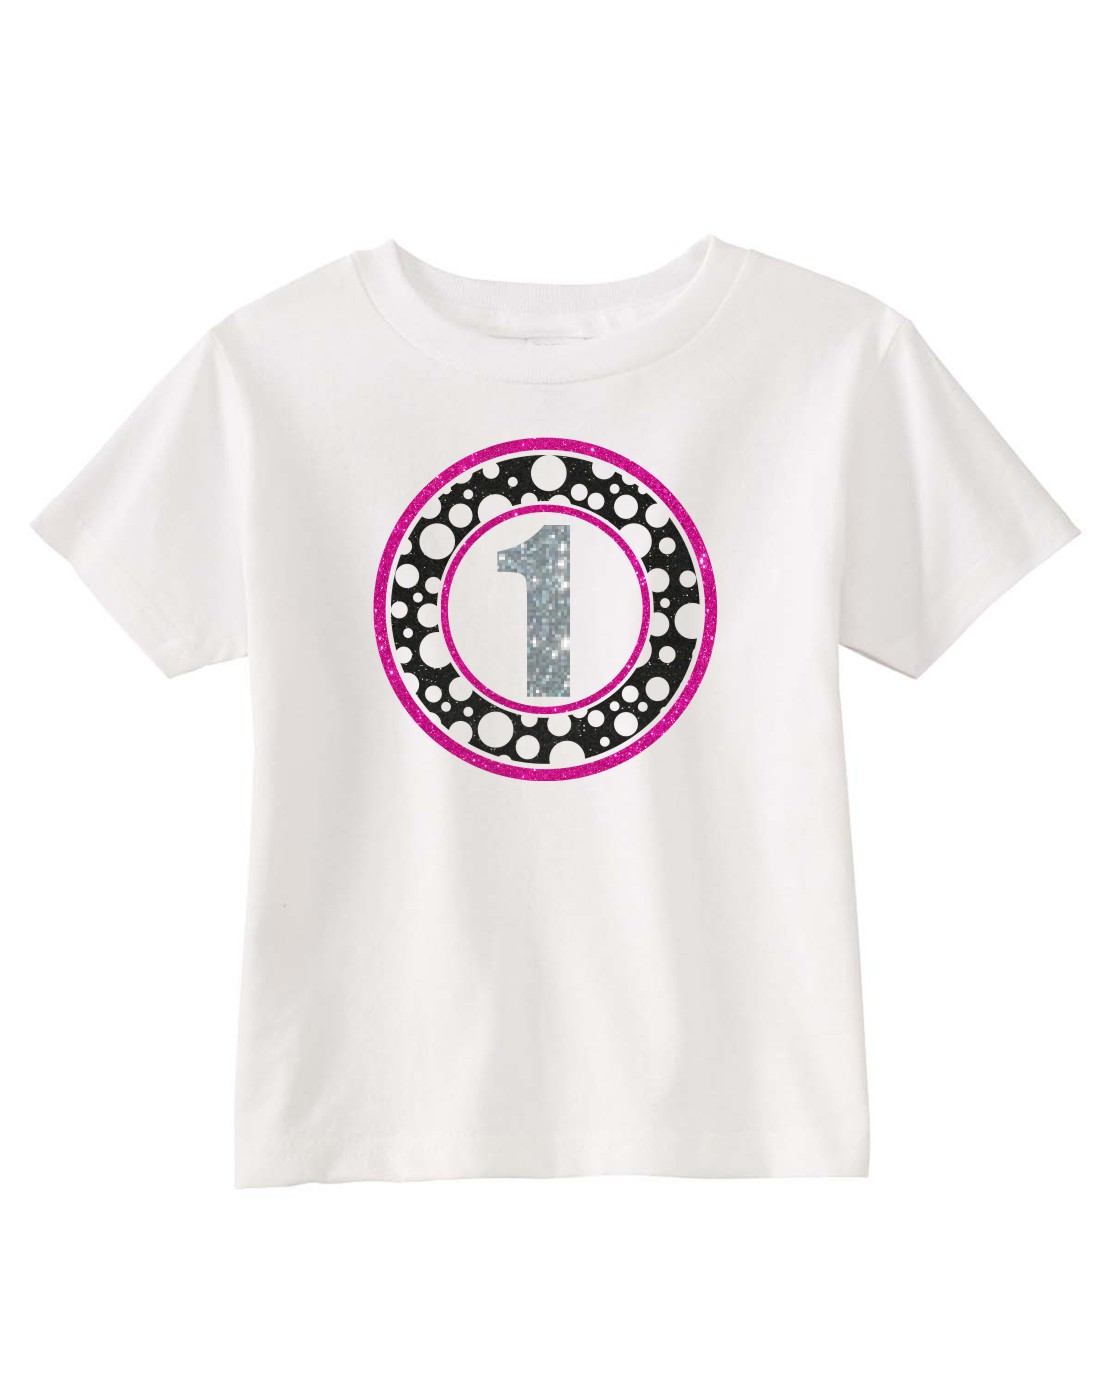 Circle Polka Dot Birthday Shirt